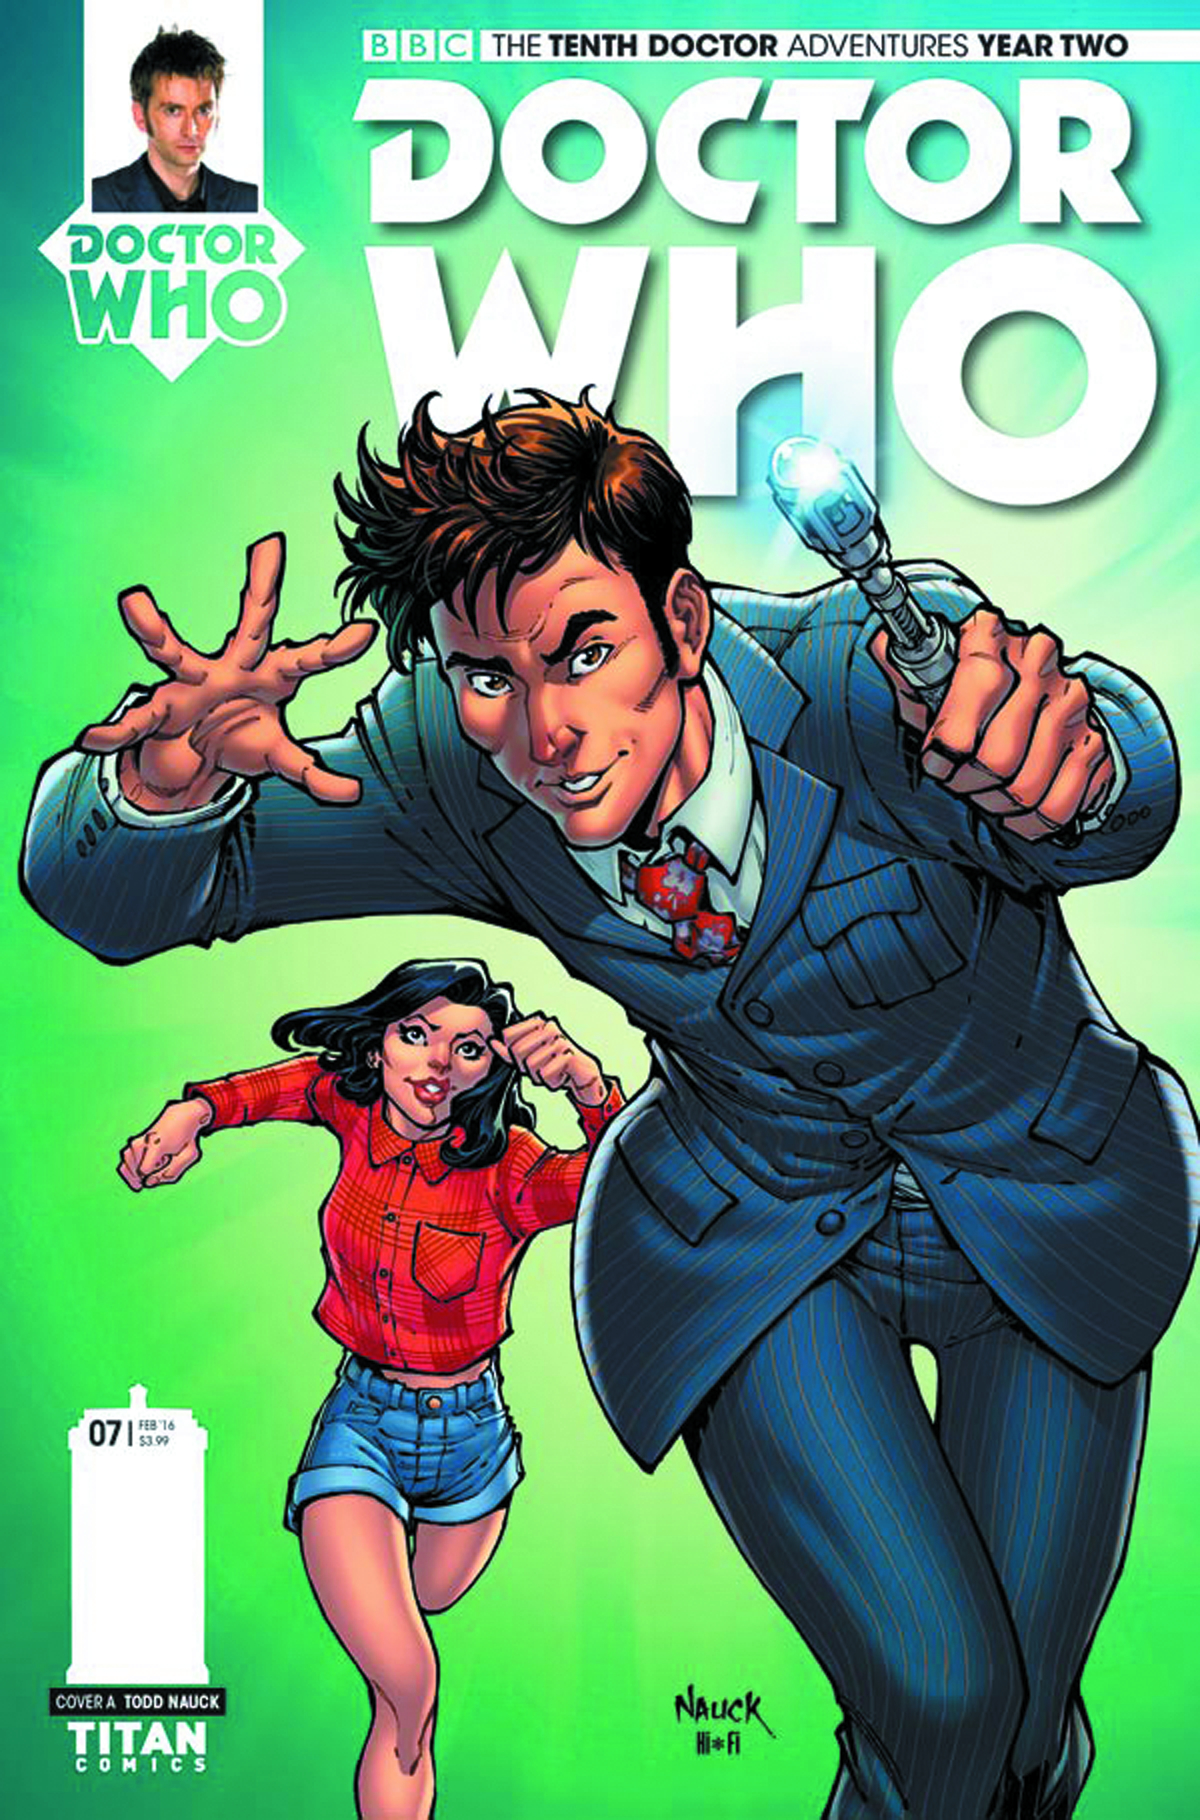 DOCTOR WHO 10TH YEAR TWO #7 CVR A NAUCK